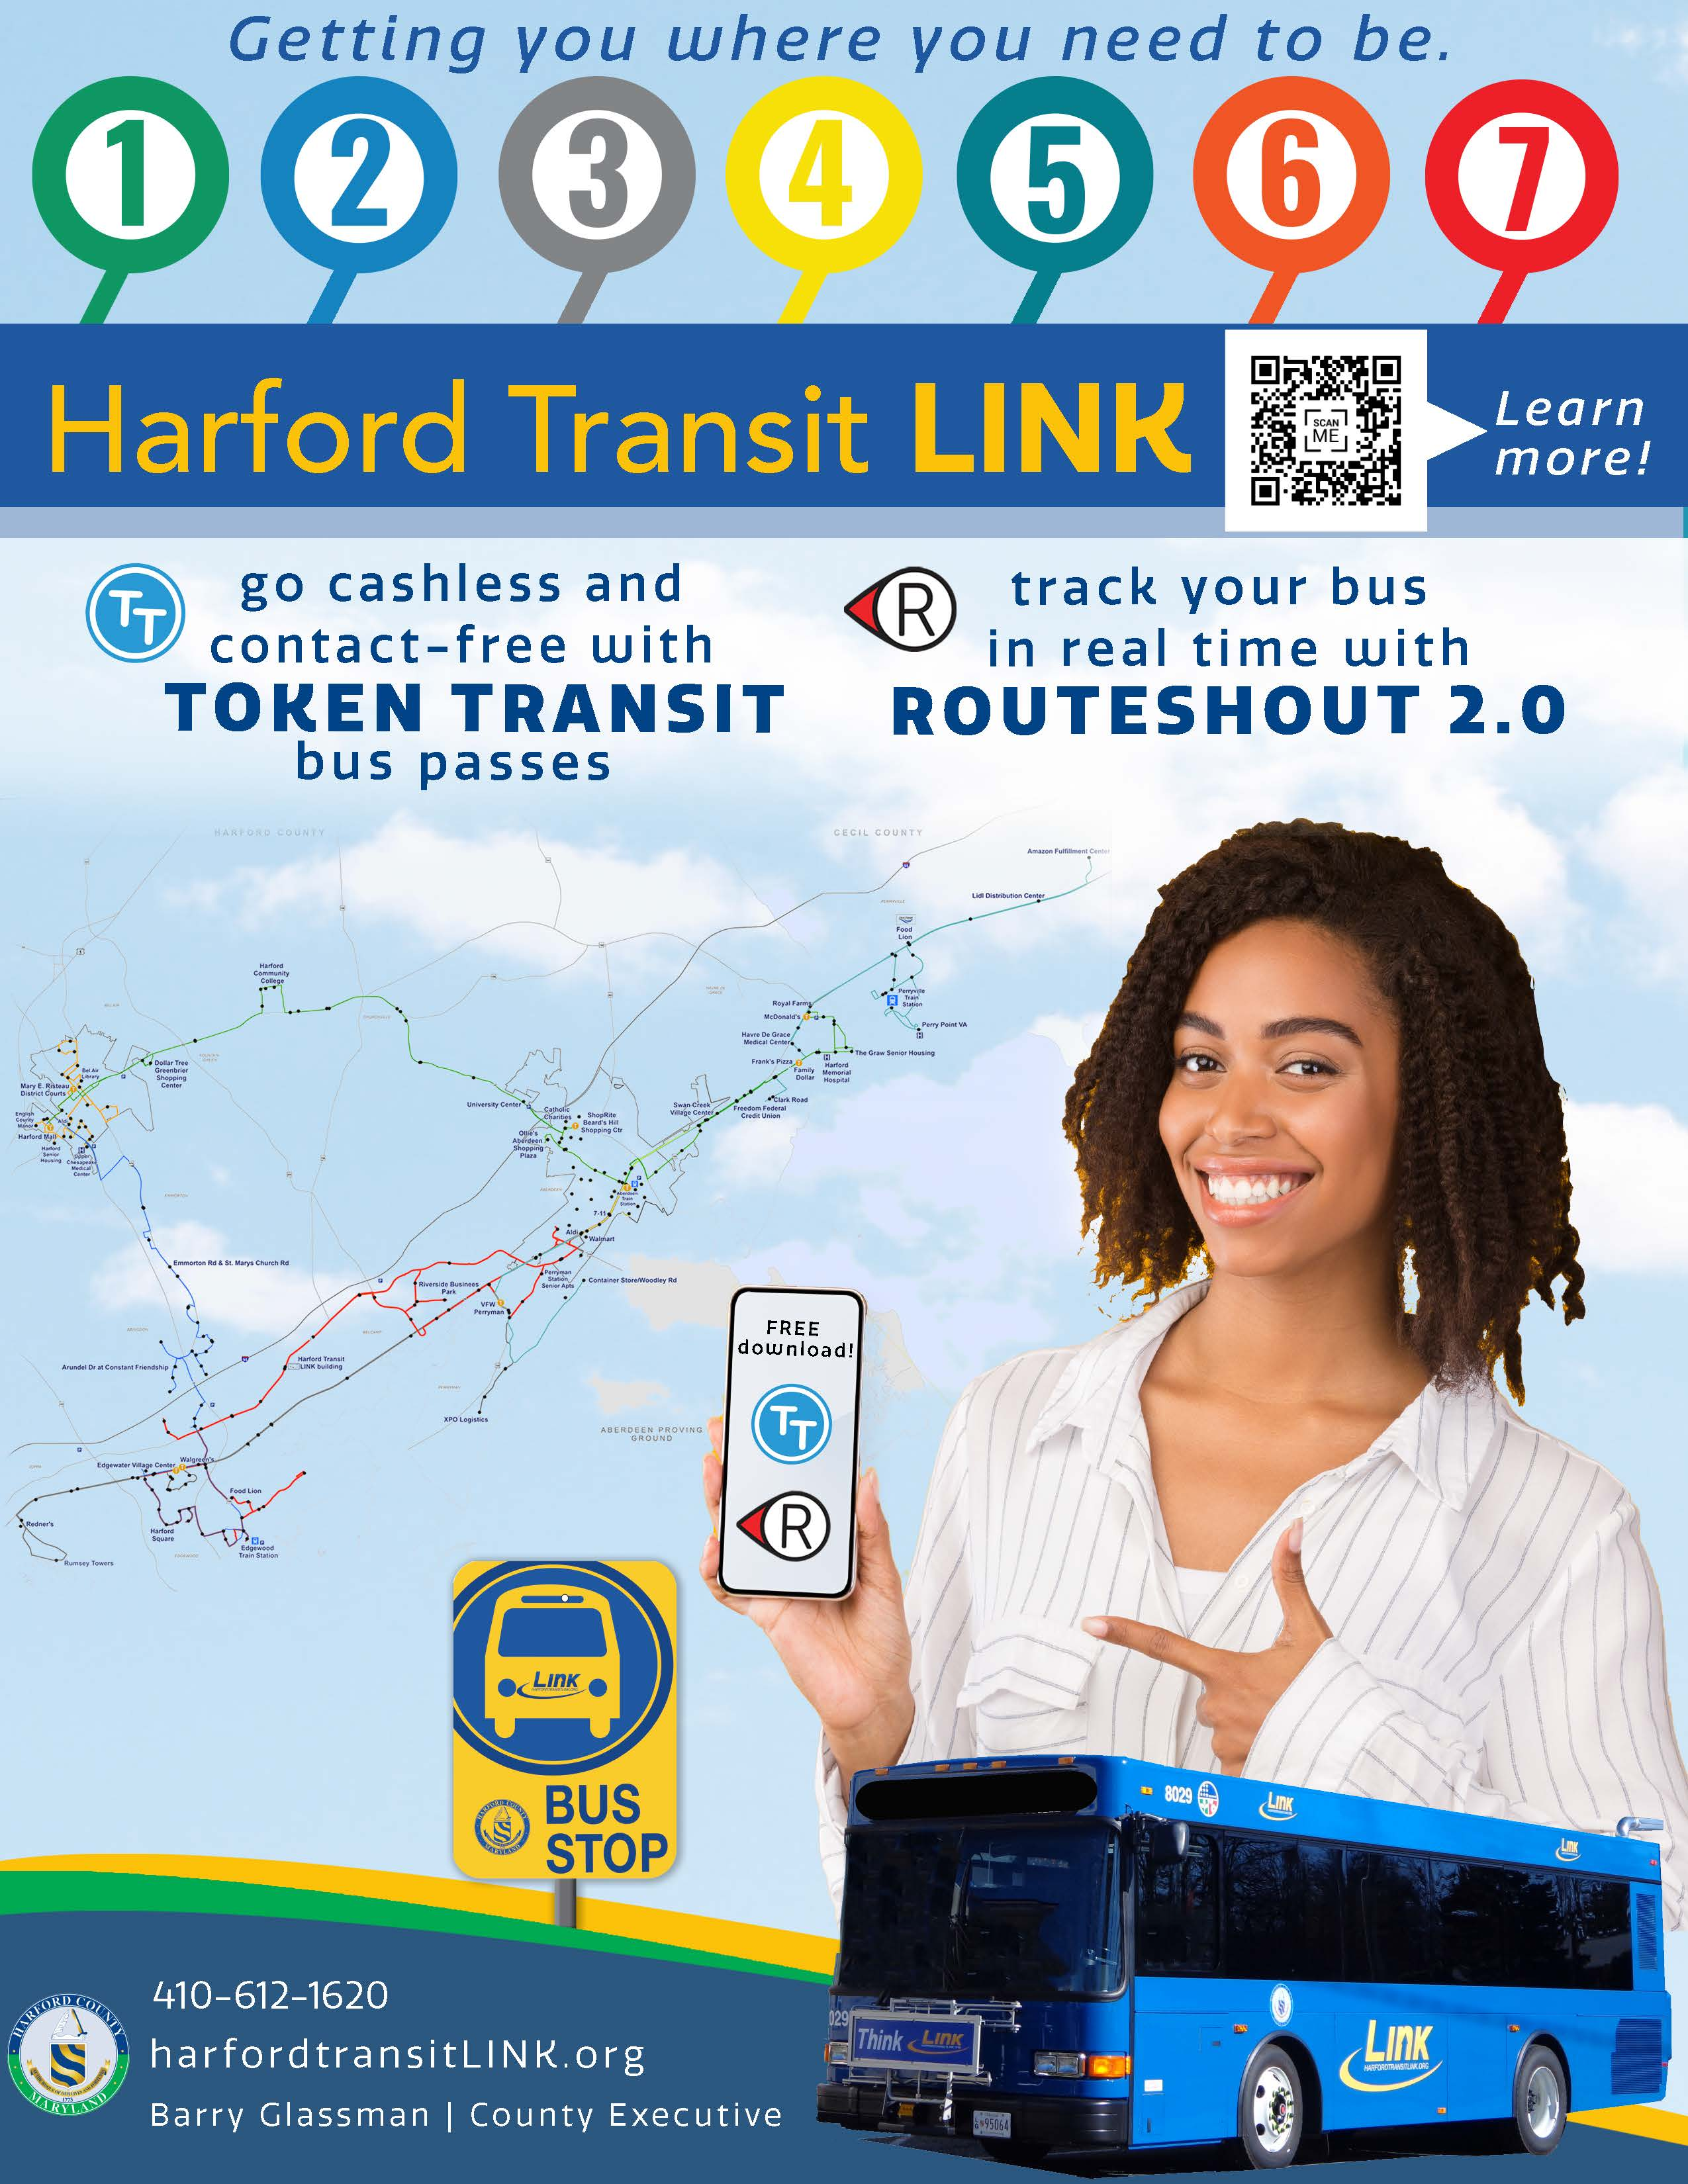 Harford Transit Link one page information